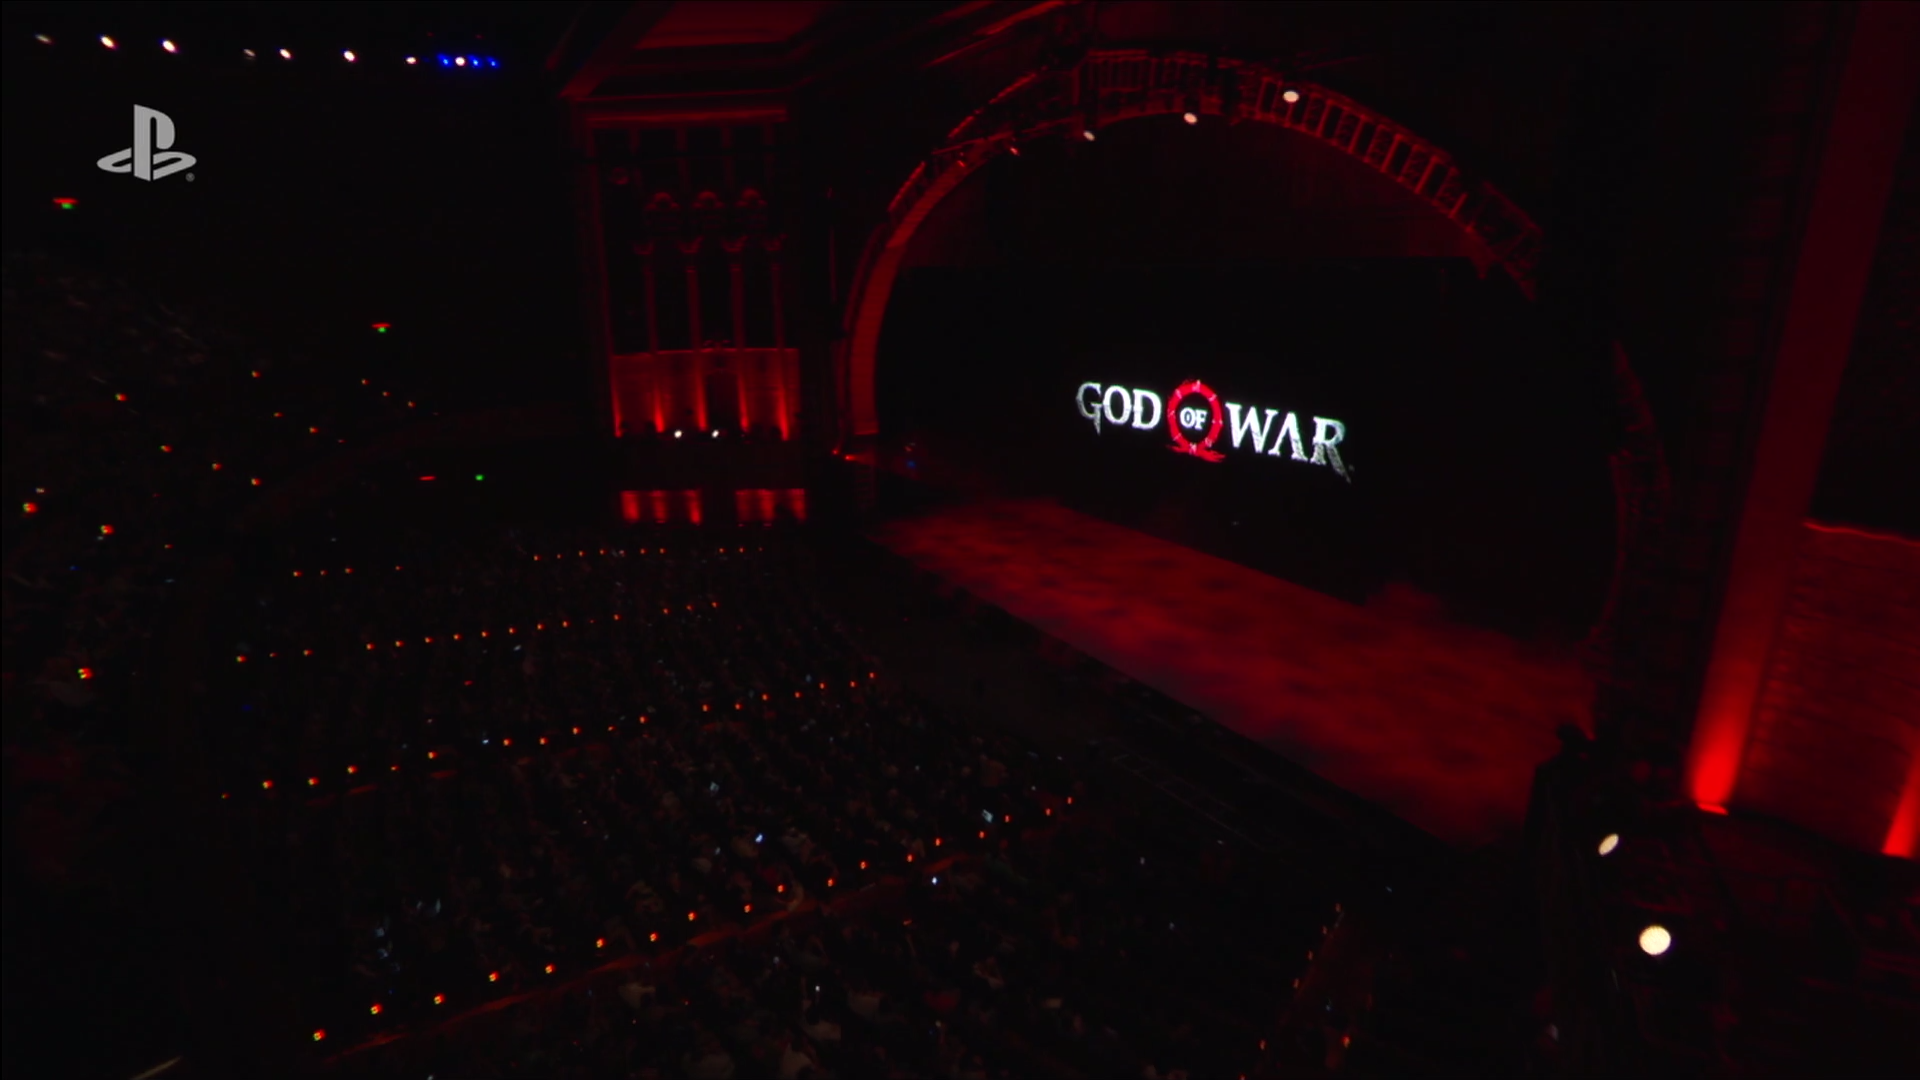 New God Of War Content Shown At Sony's E3 Press Conference